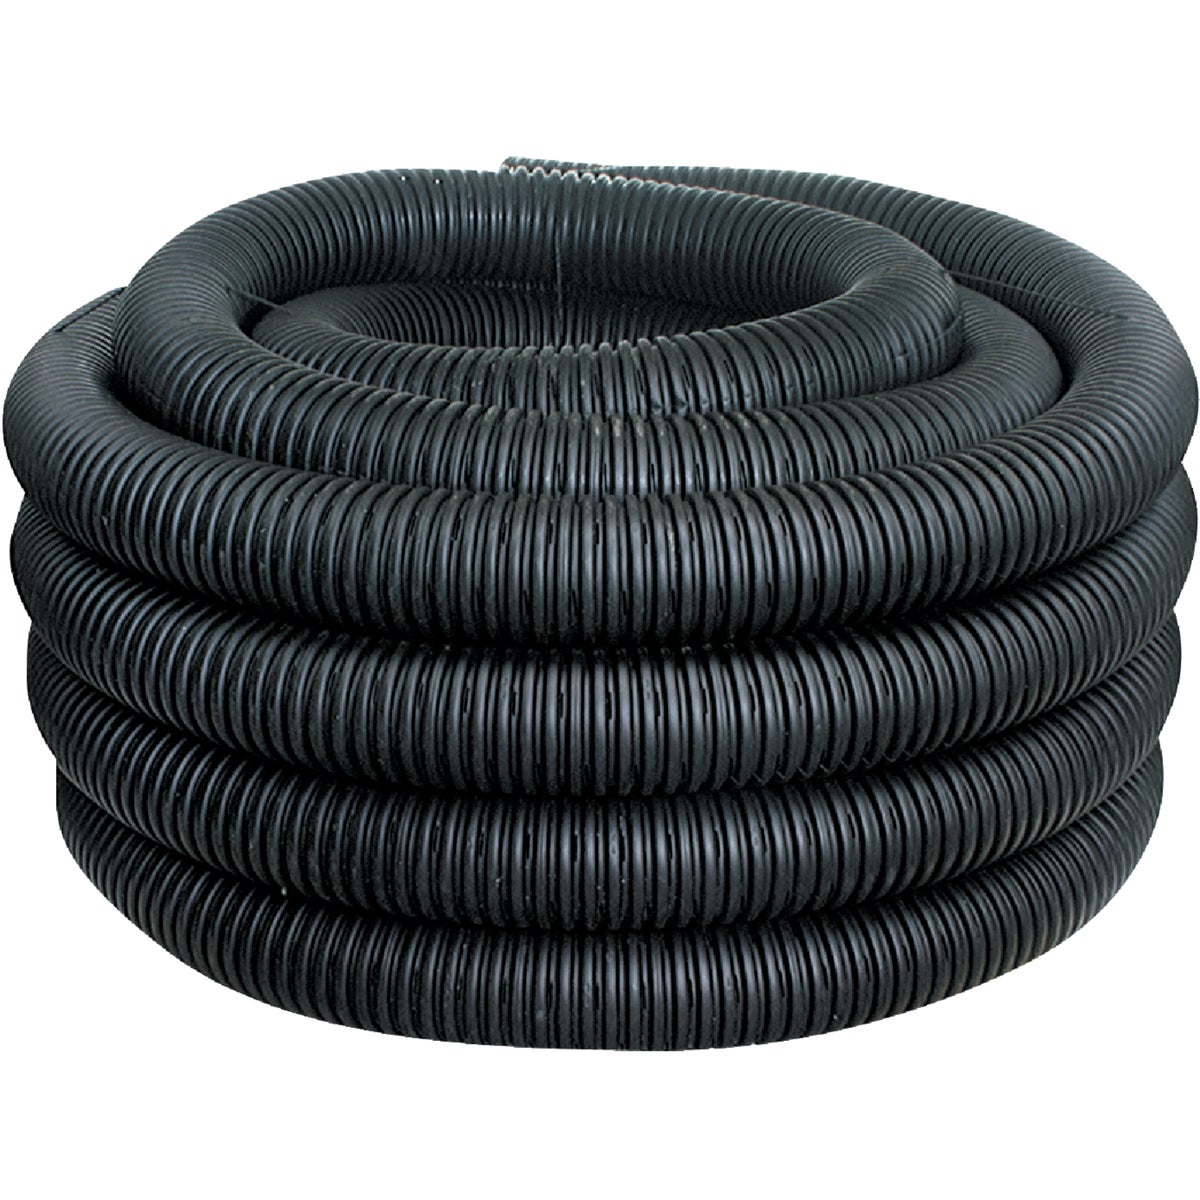 "3""X100' SLOTTED PIPE - 301-100 by Advanced Drainage Sy"